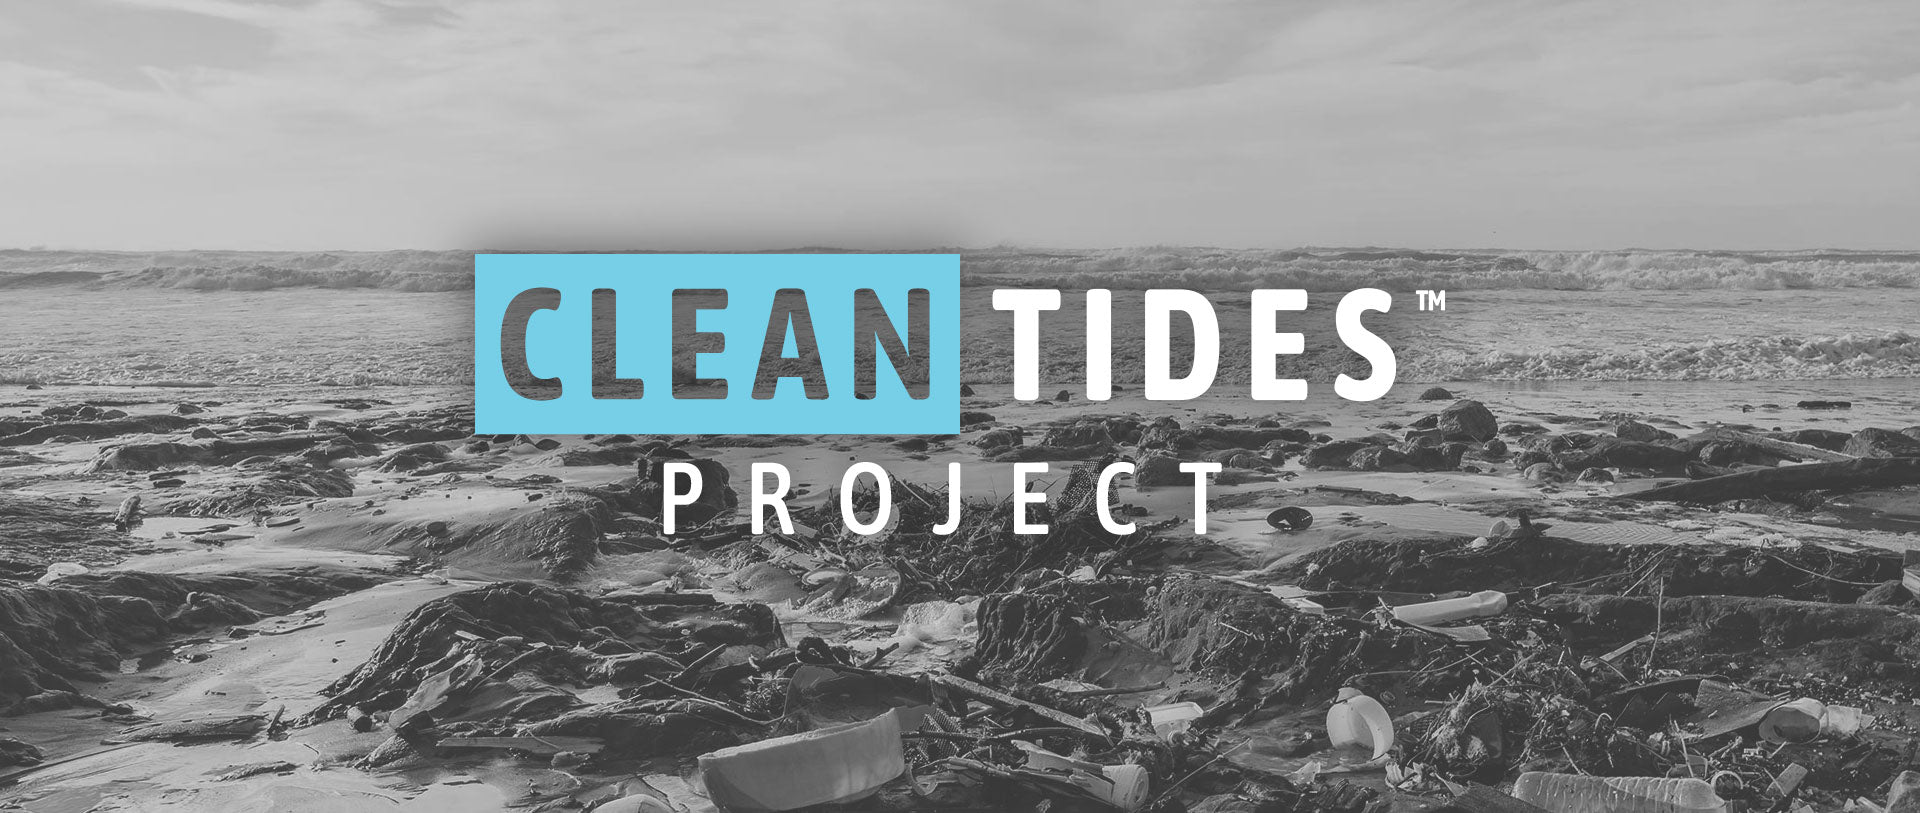 Clean Tides Project